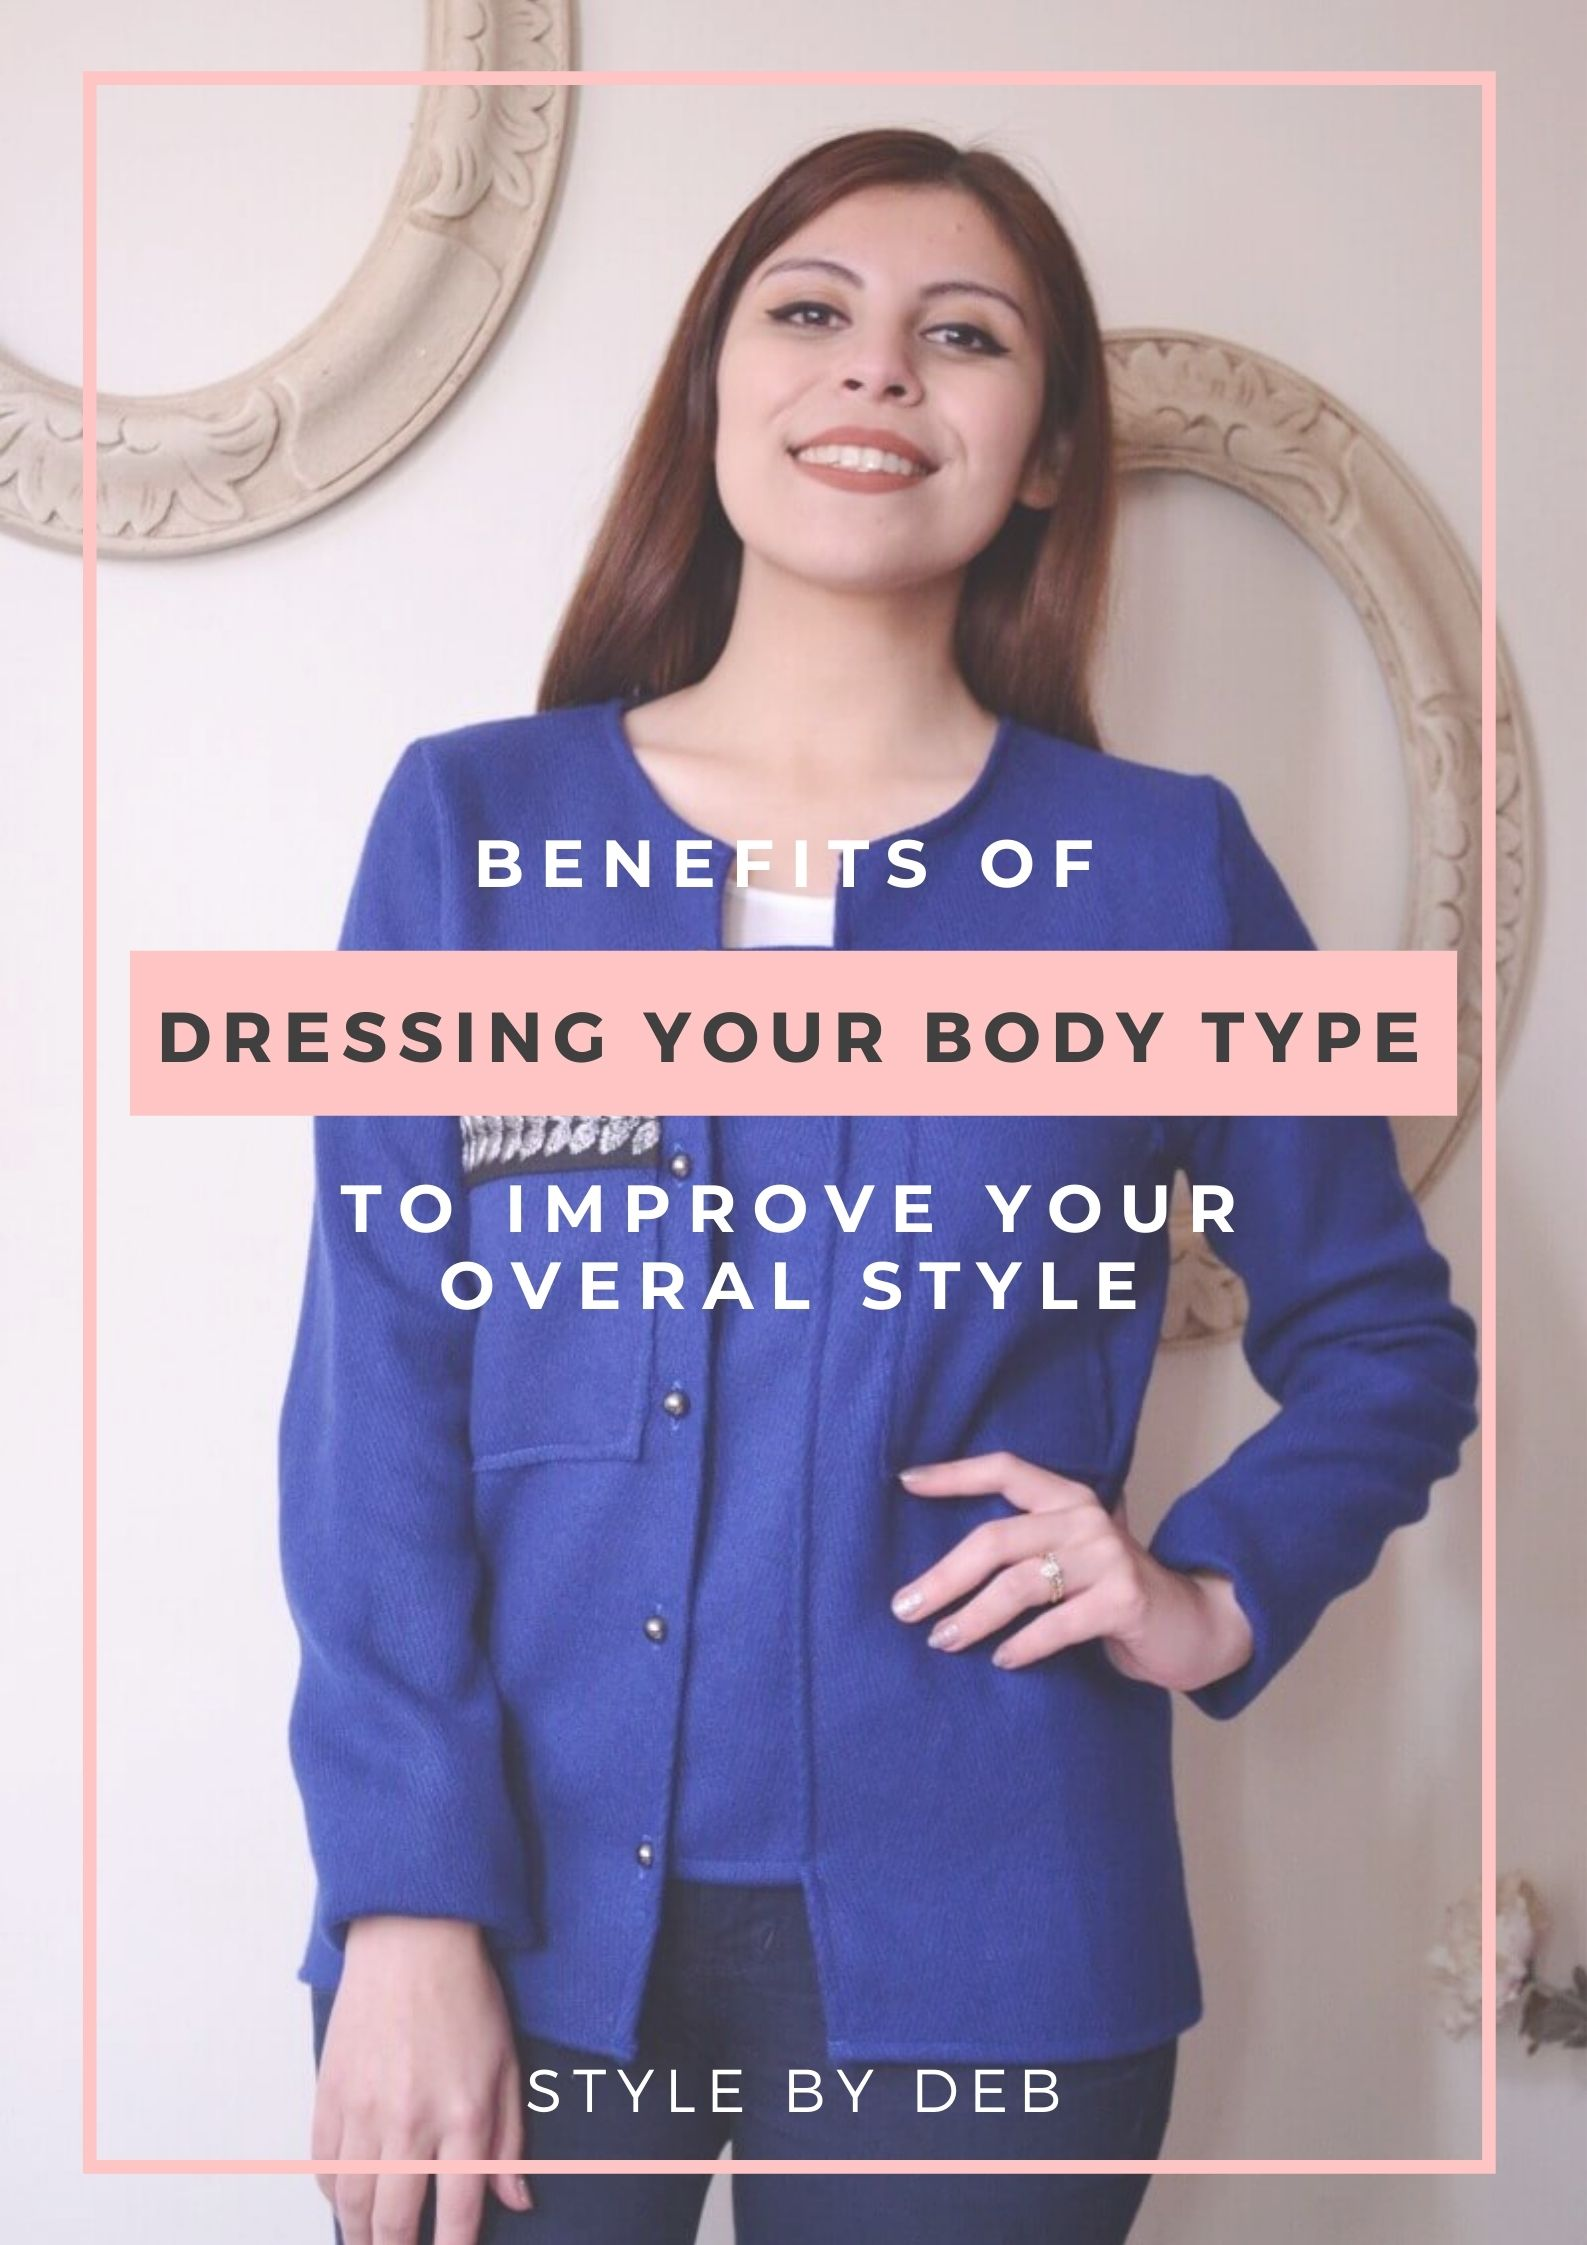 DRESSING YOUR BODY TYPE TO IMPROVE YOUR STYLE